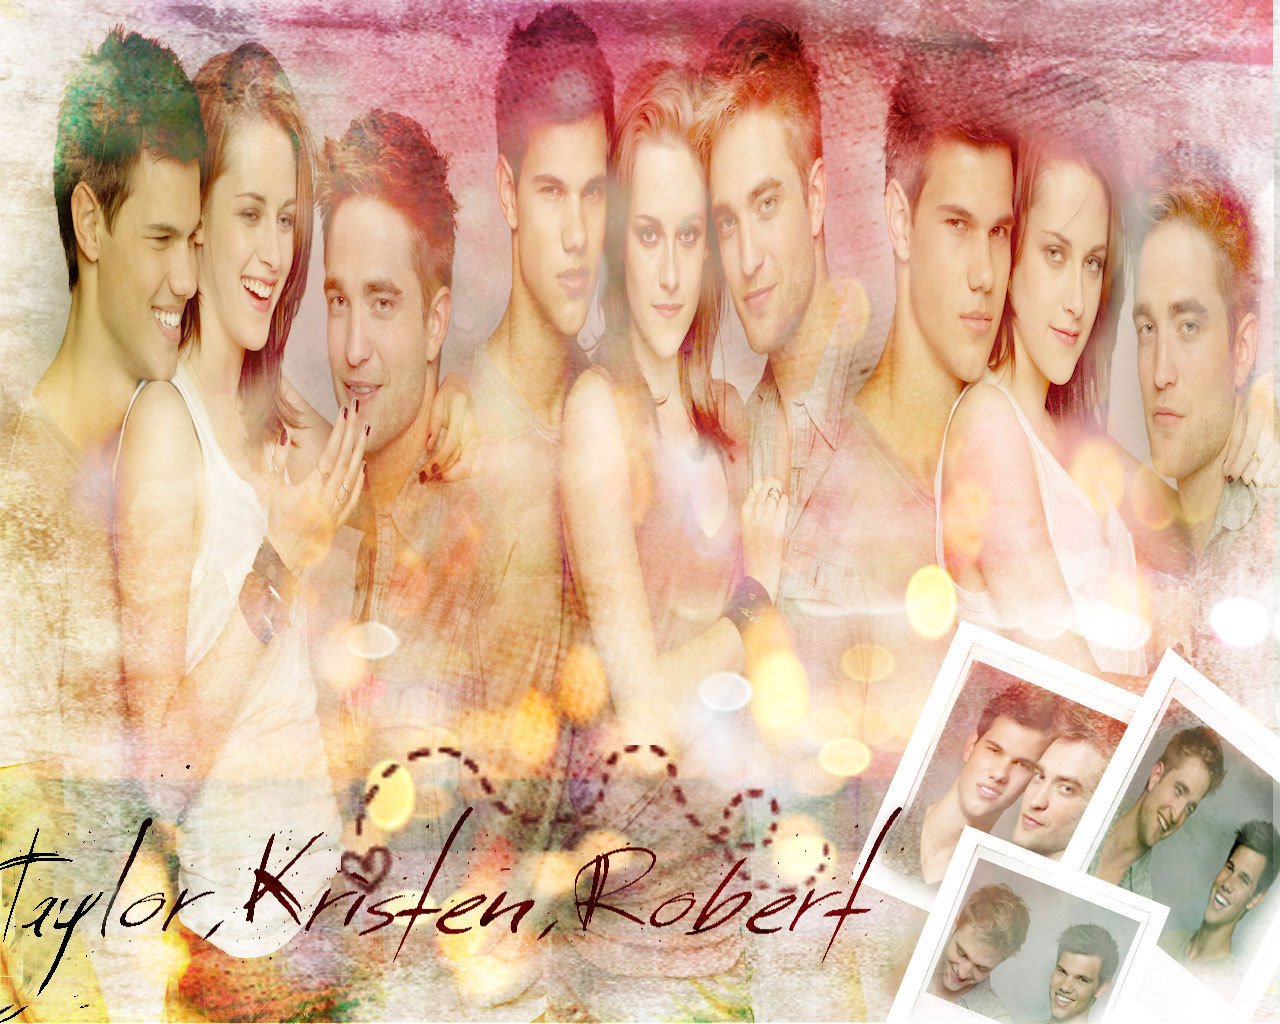 taylor.kristen,robert - twilight-series wallpaper